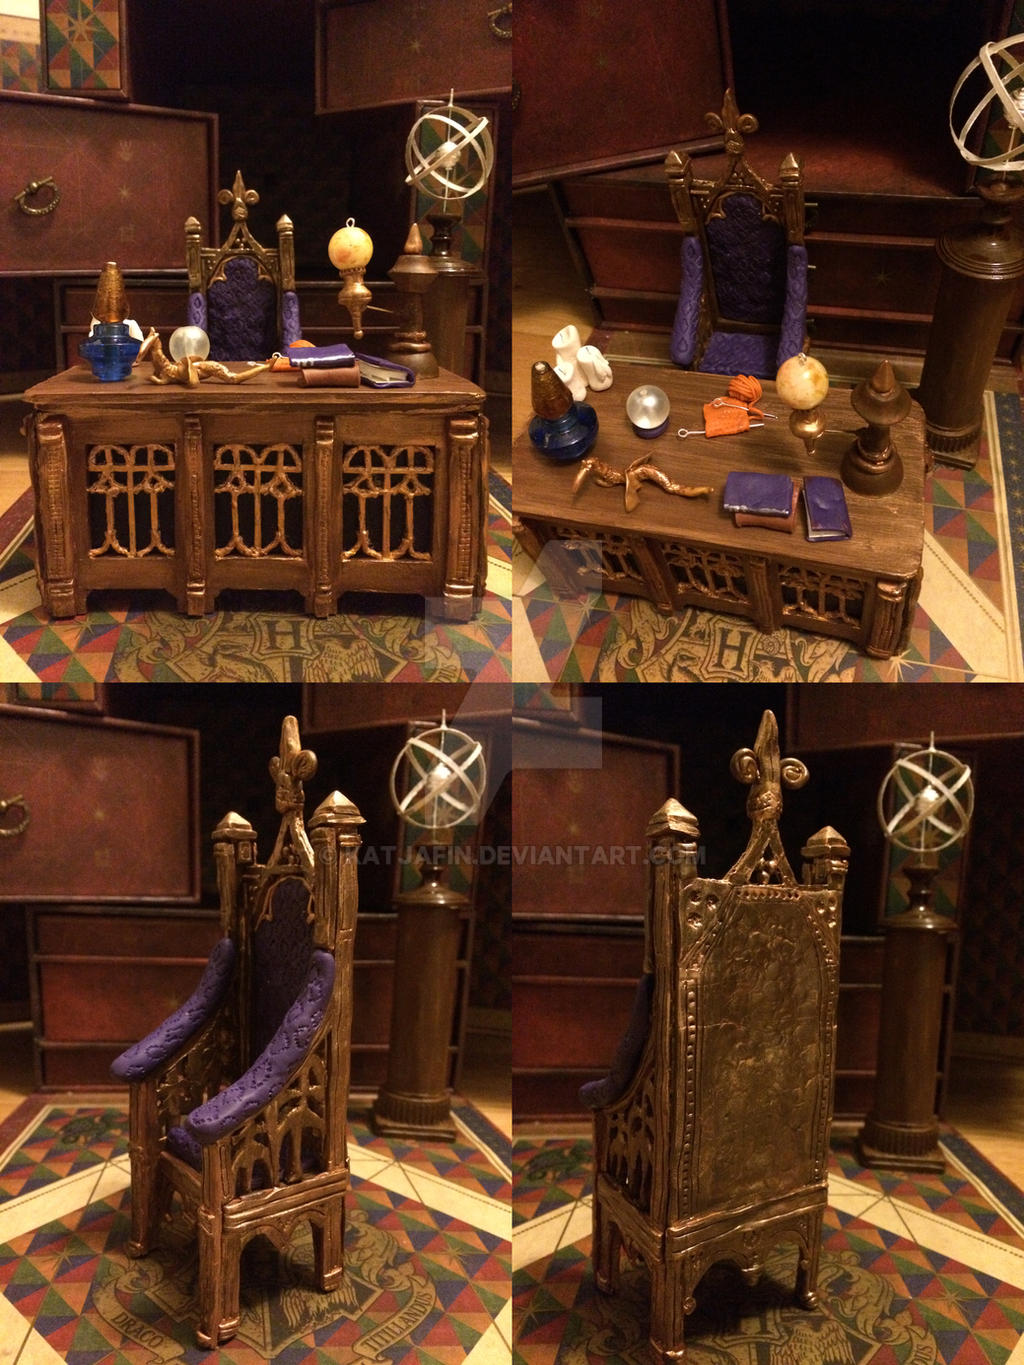 Dumbledore S Desk And Chair By Katjafin On Deviantart